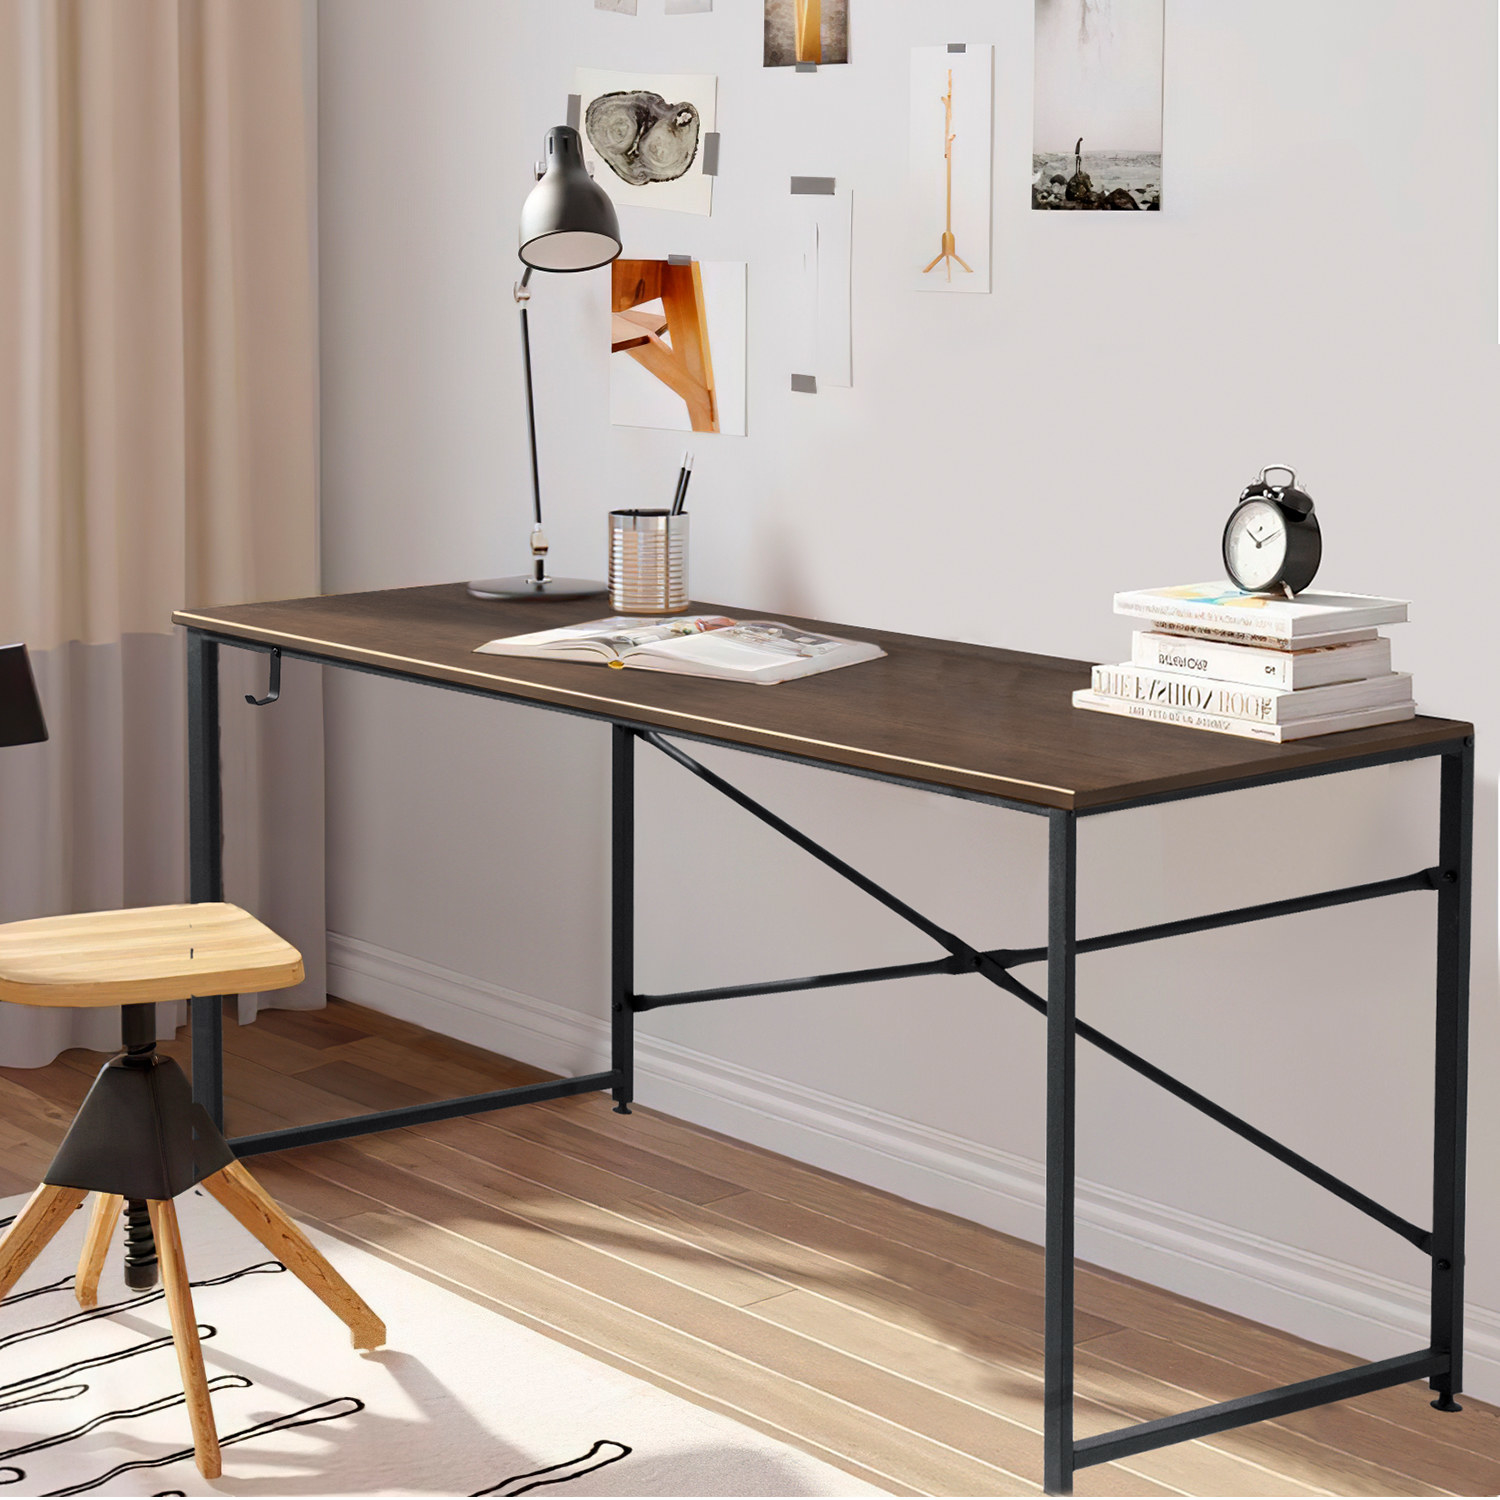 wooden desk with black legs sitting in an at home office